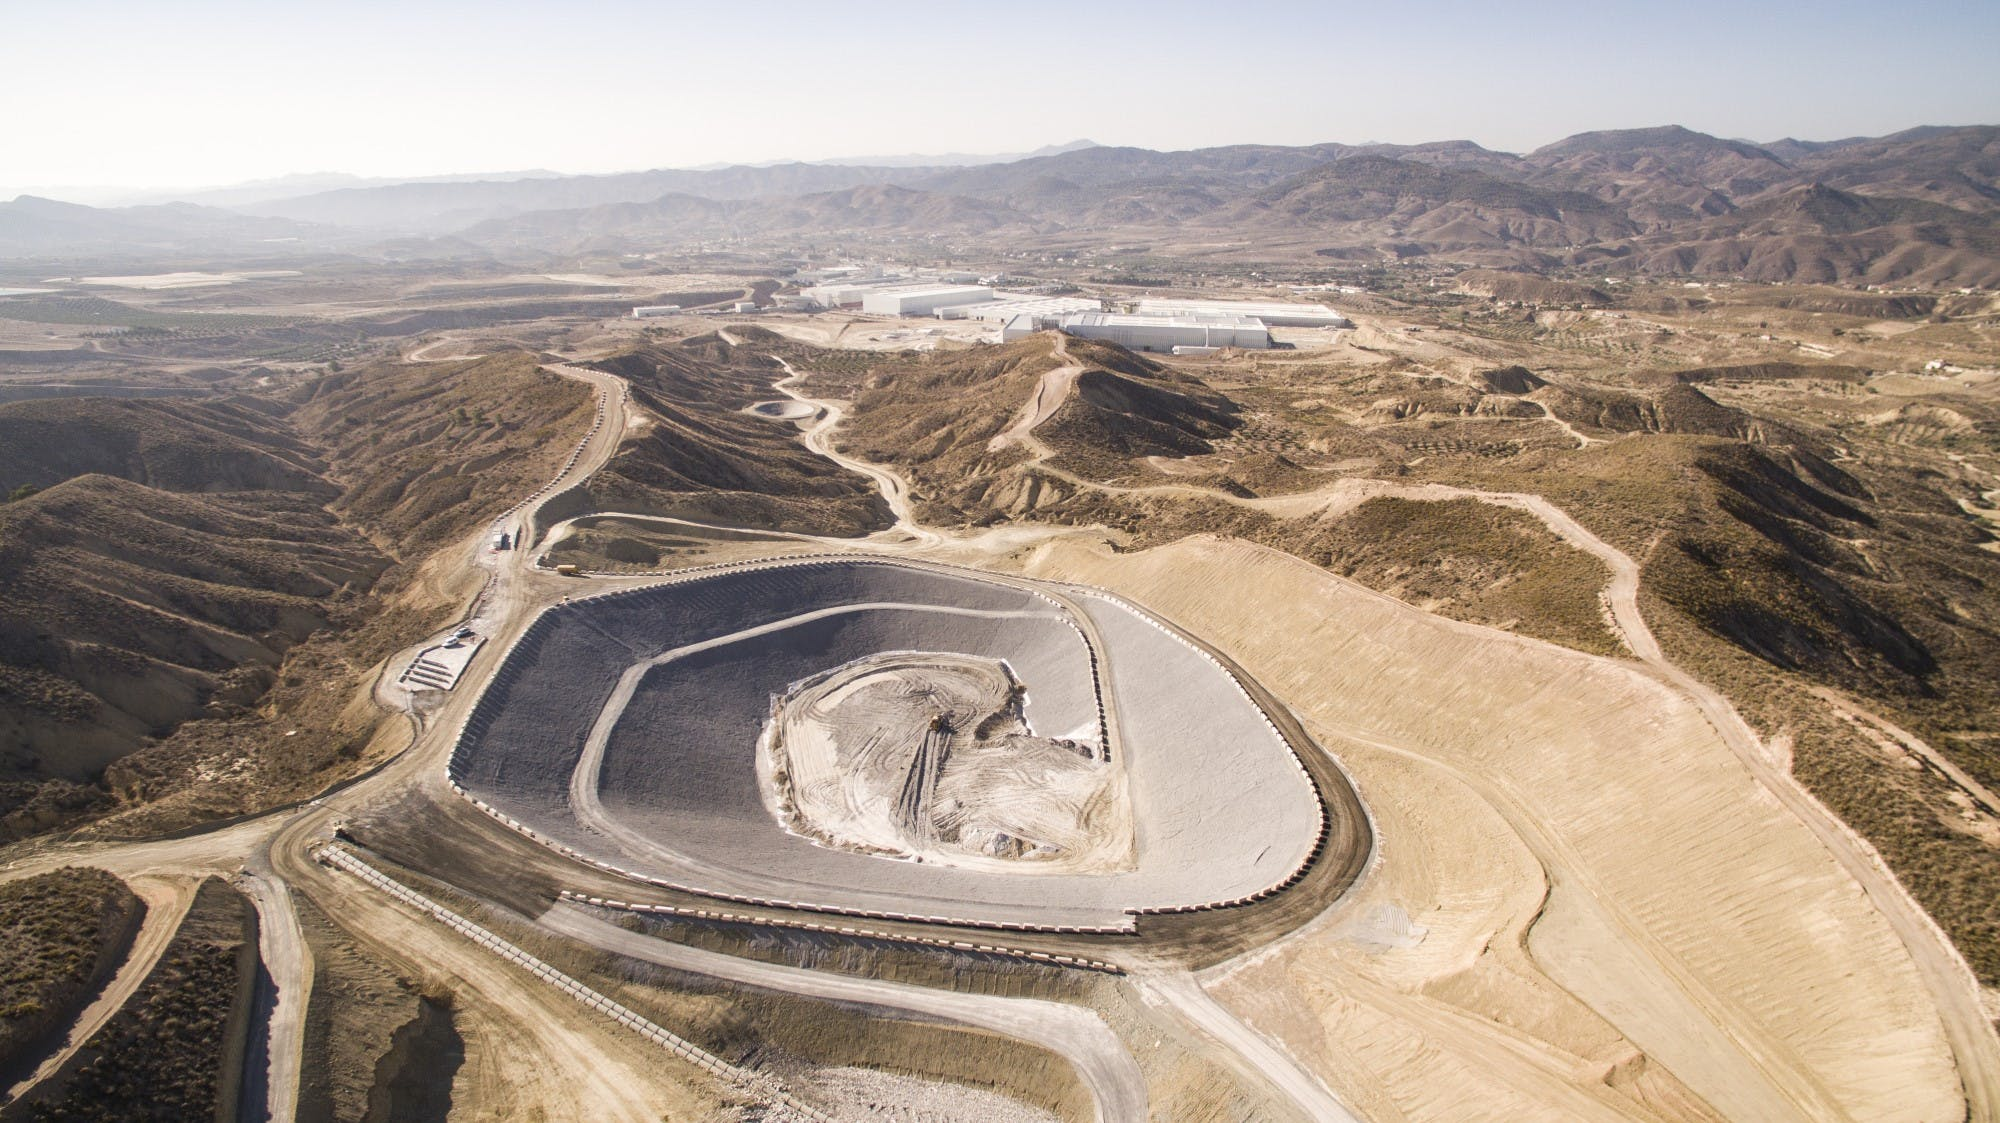 Image of Panoramica Planta Gestion Residuos COMA 2 3 in Cosentino, receives Environment Award from Andalusia Regional Government - Cosentino